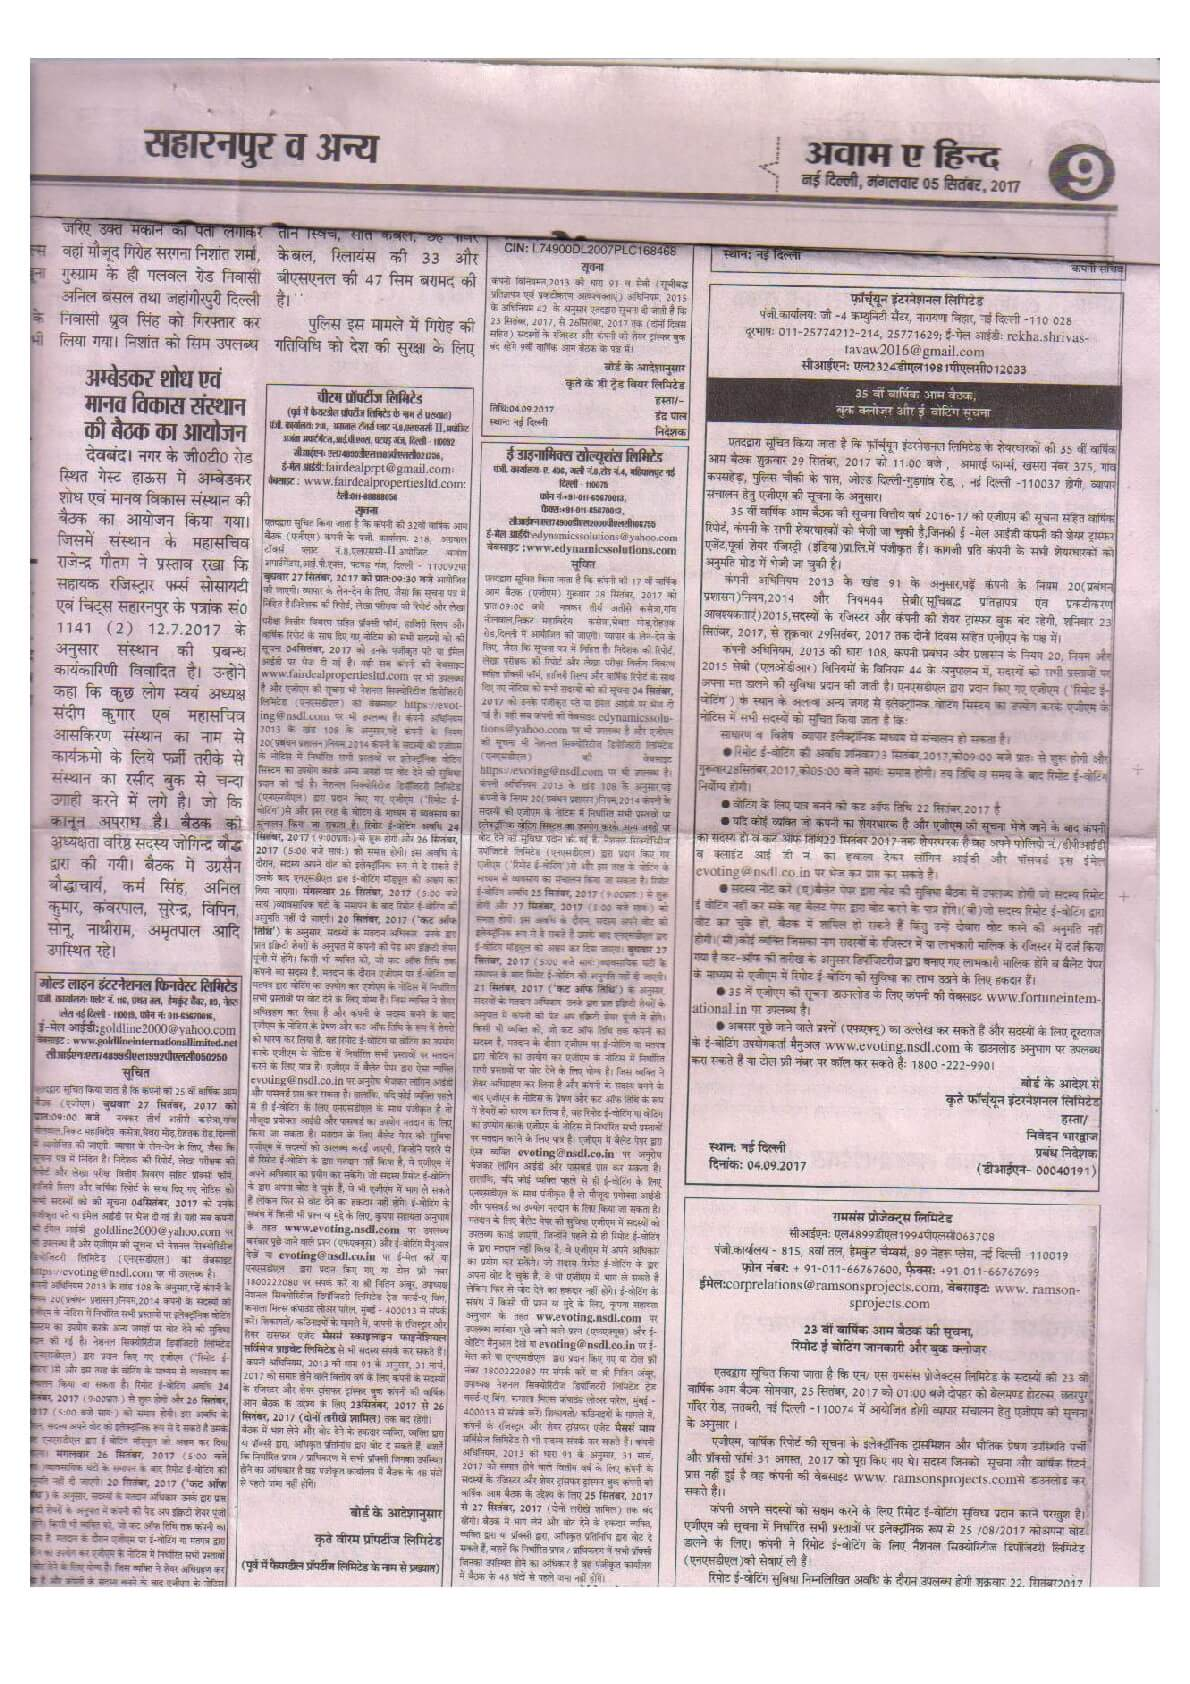 AGM Newspaper cutting-Hindi-2017